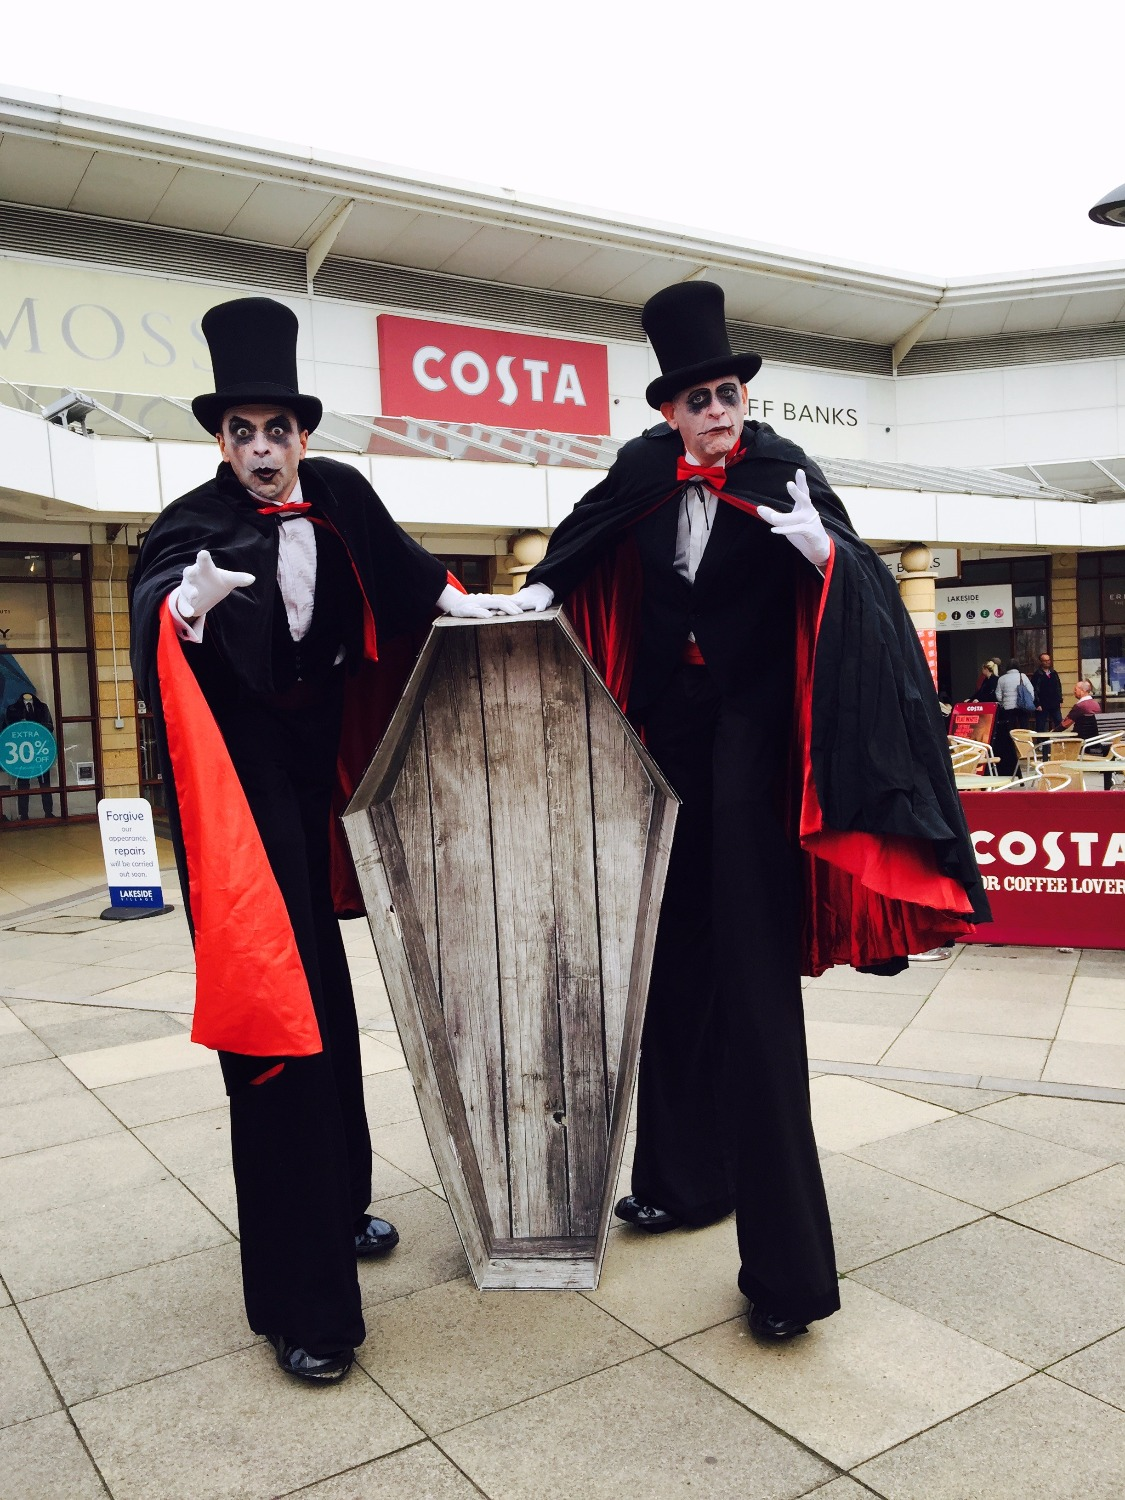 Promo Halloween Characters Walkabout Characters Oxfordshire